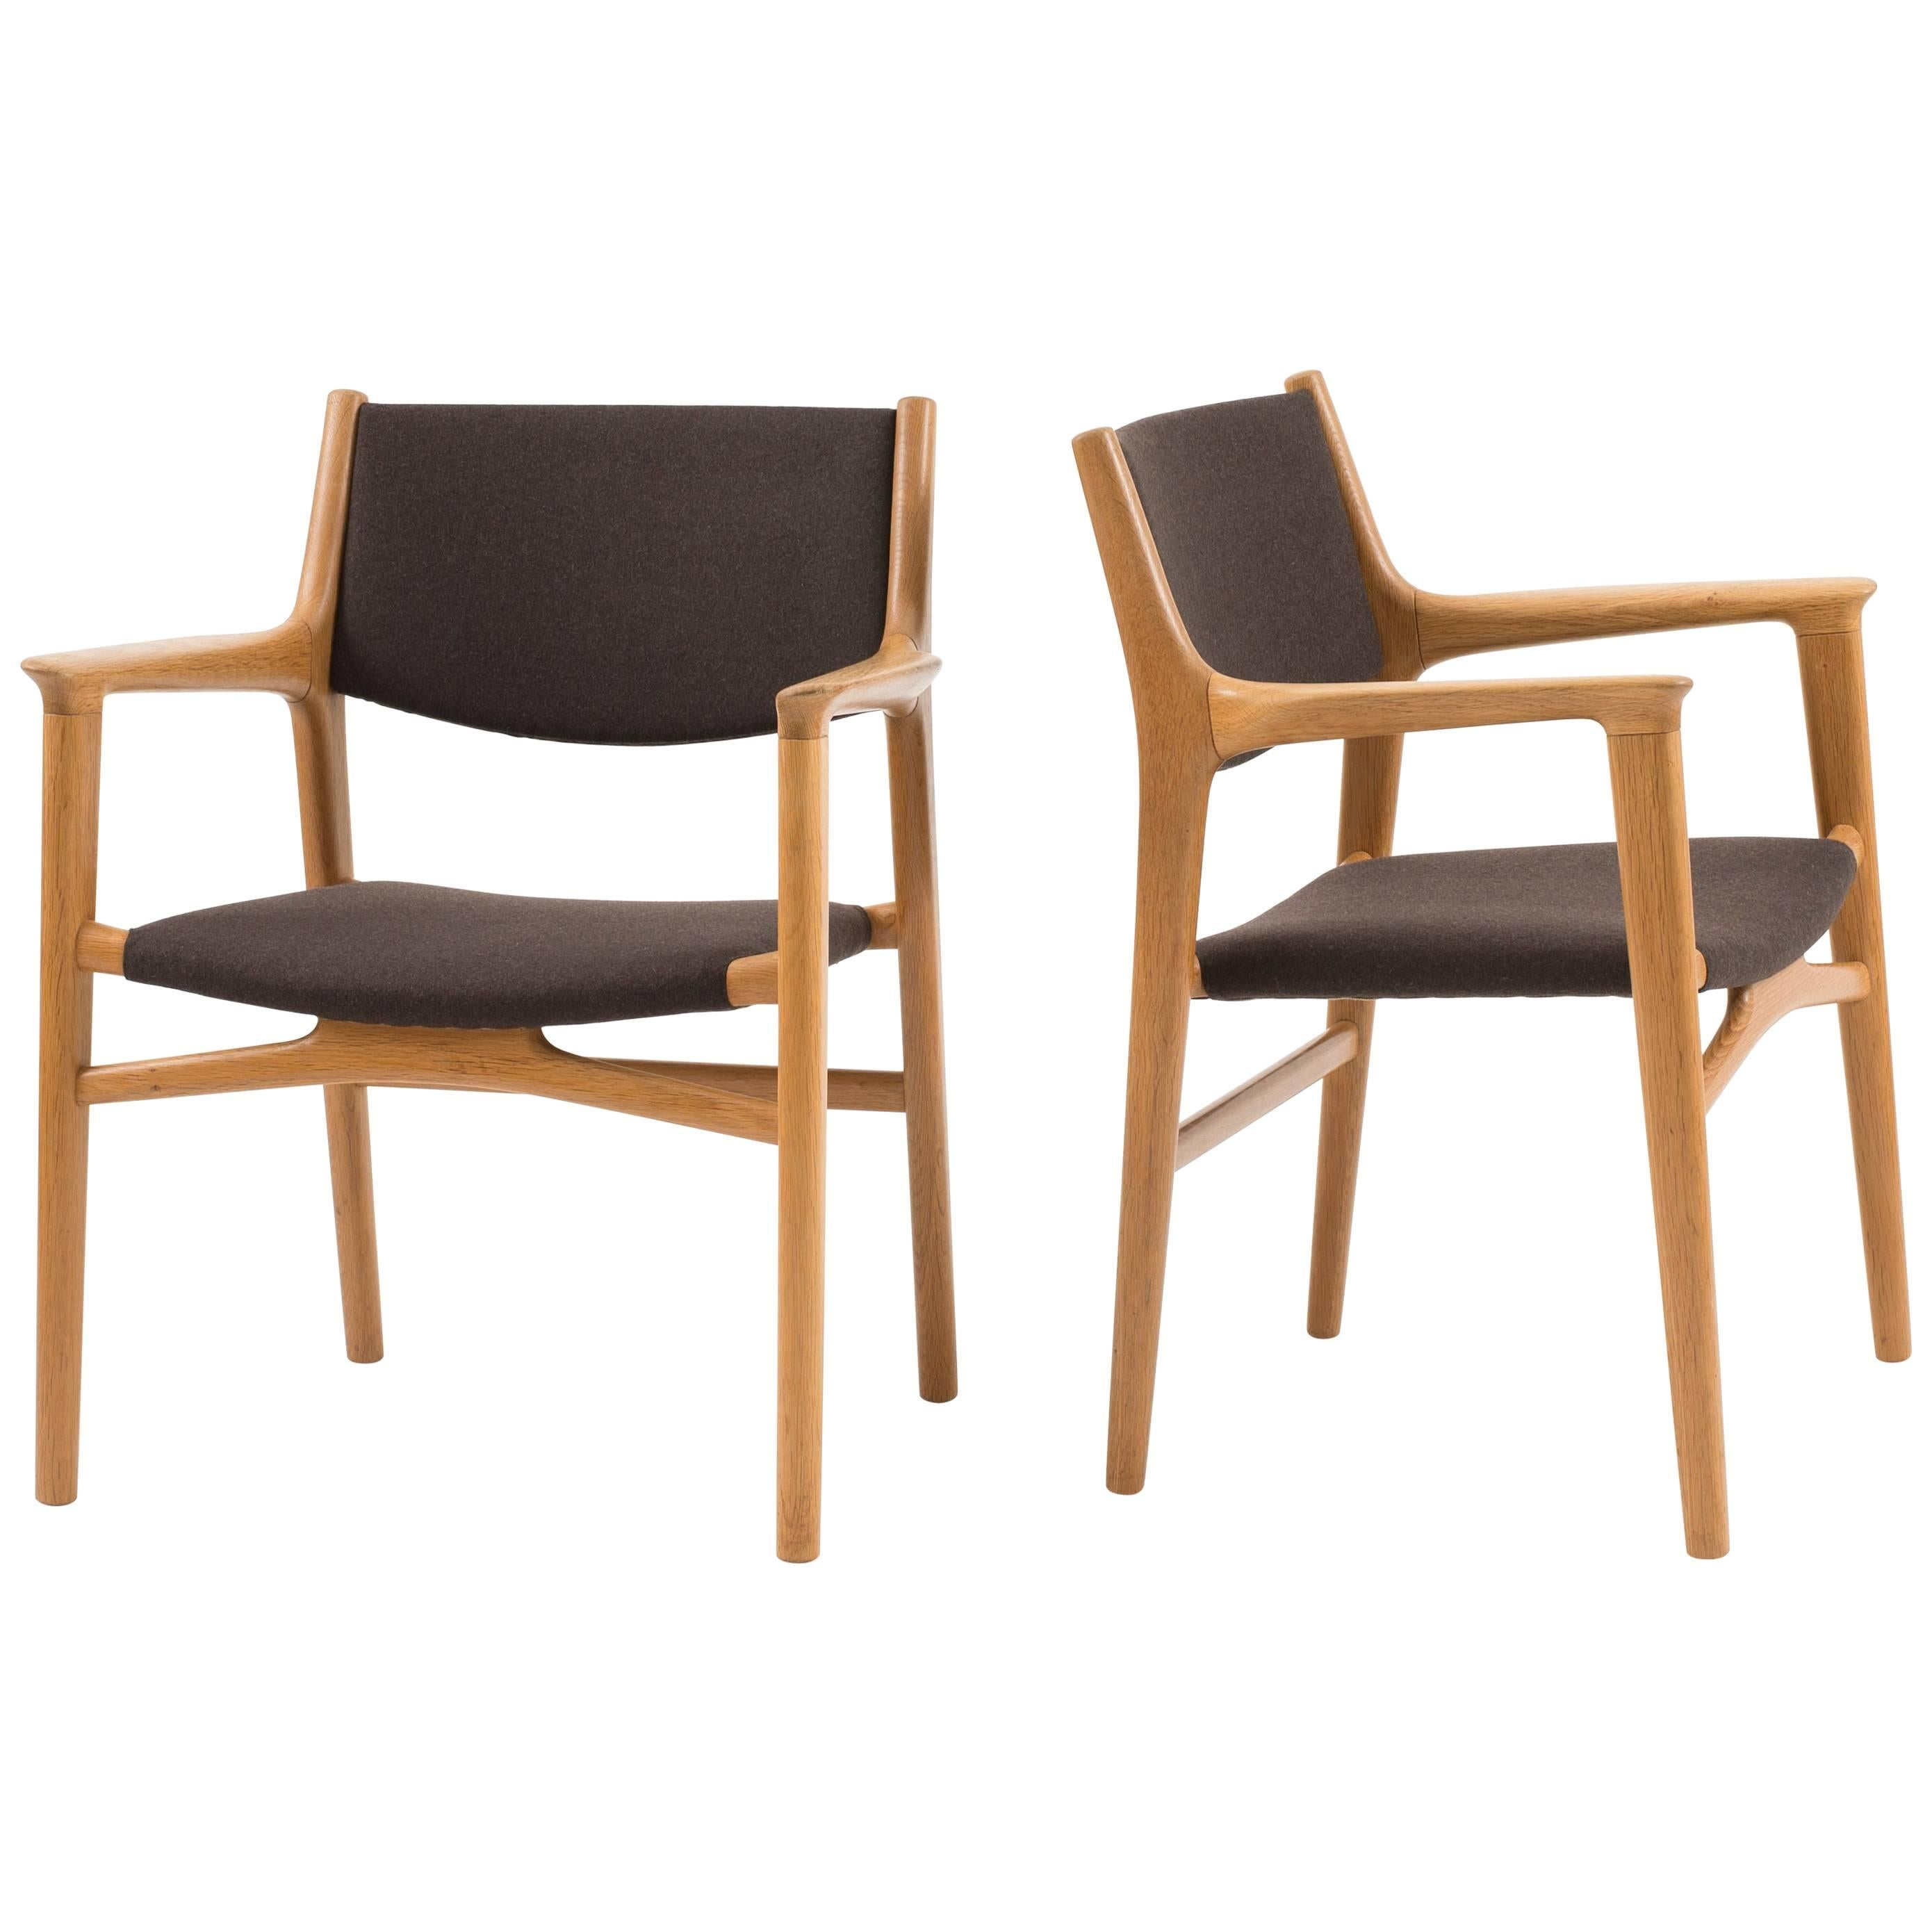 Pair of Hans J. Wegner JH-515 Armchairs for Johannes Hansen